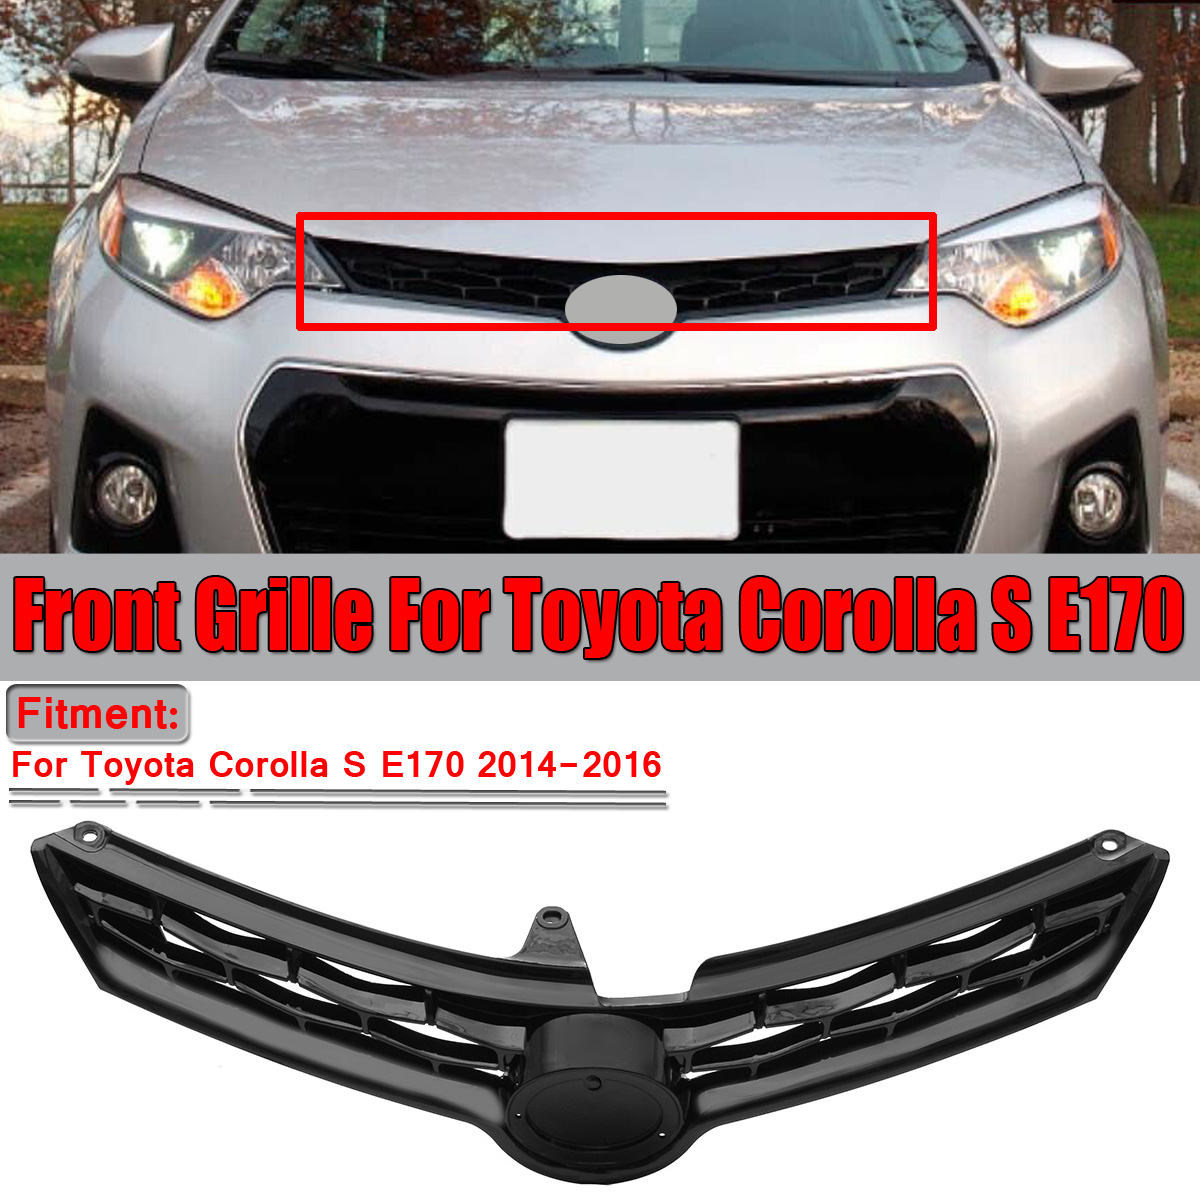 2014-2016 For Toyota Corolla Front BUMPER GRILLE